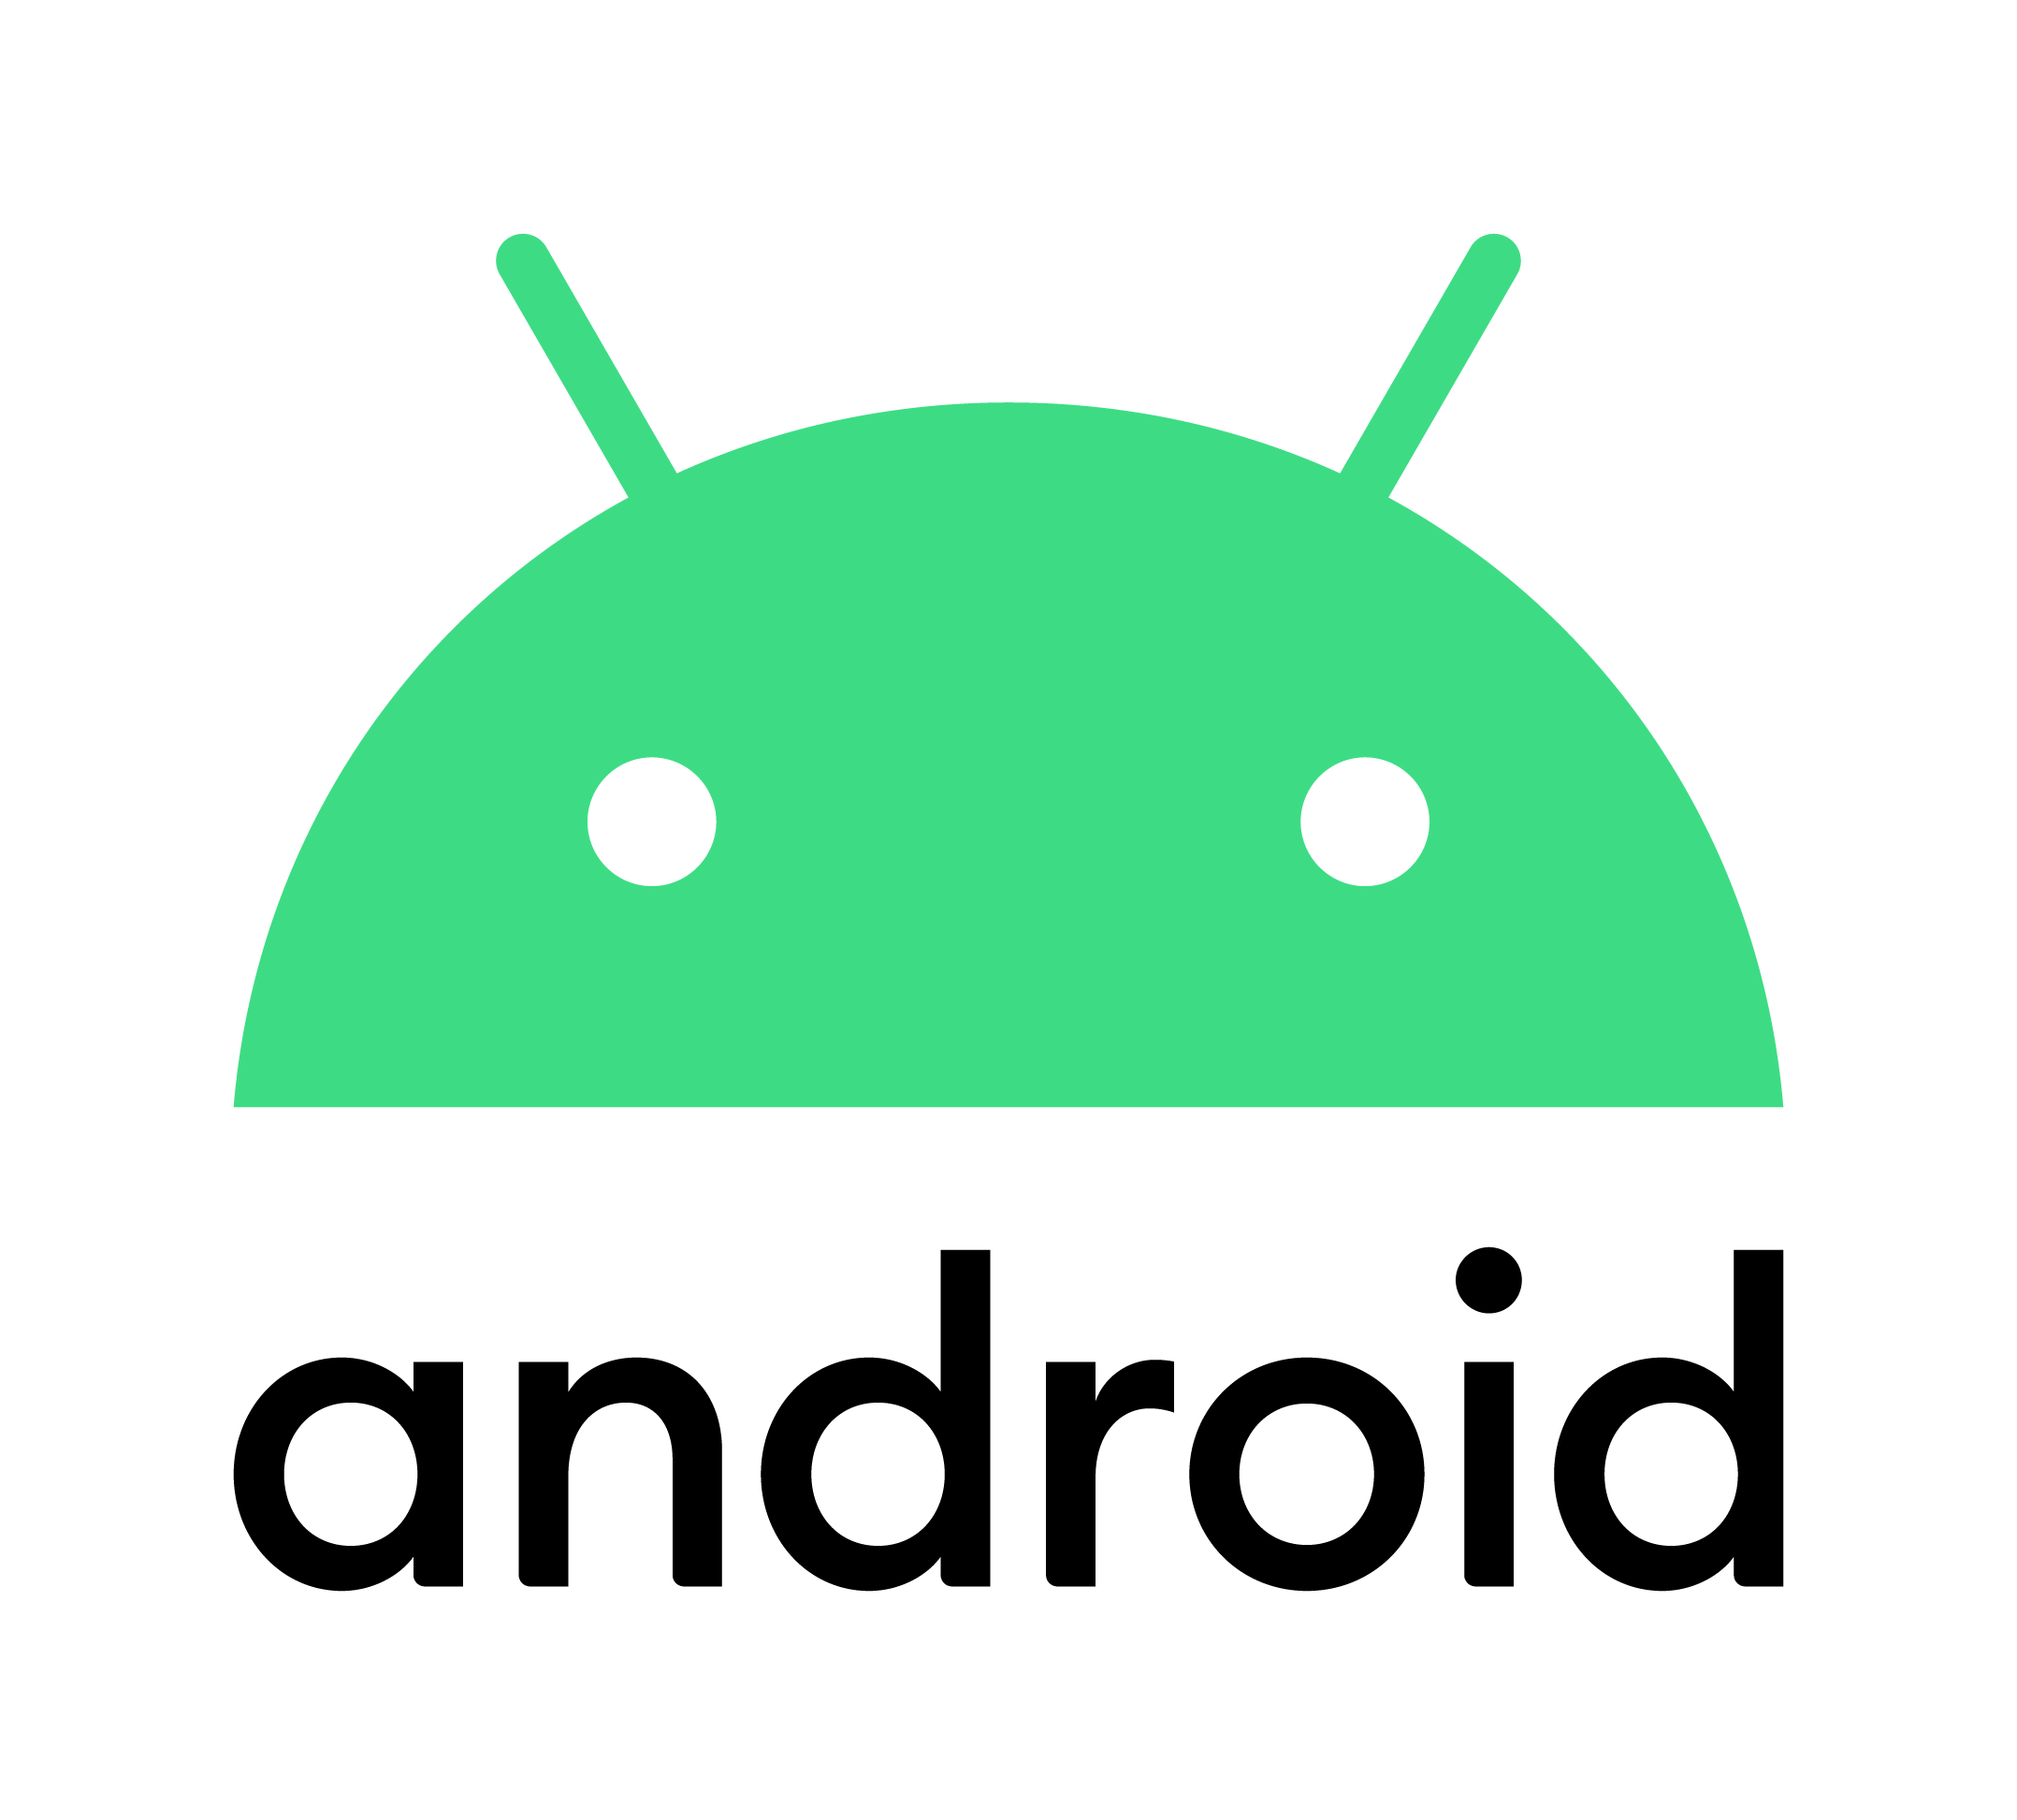 Future Android versions may allow you to play large games while they're still downloading